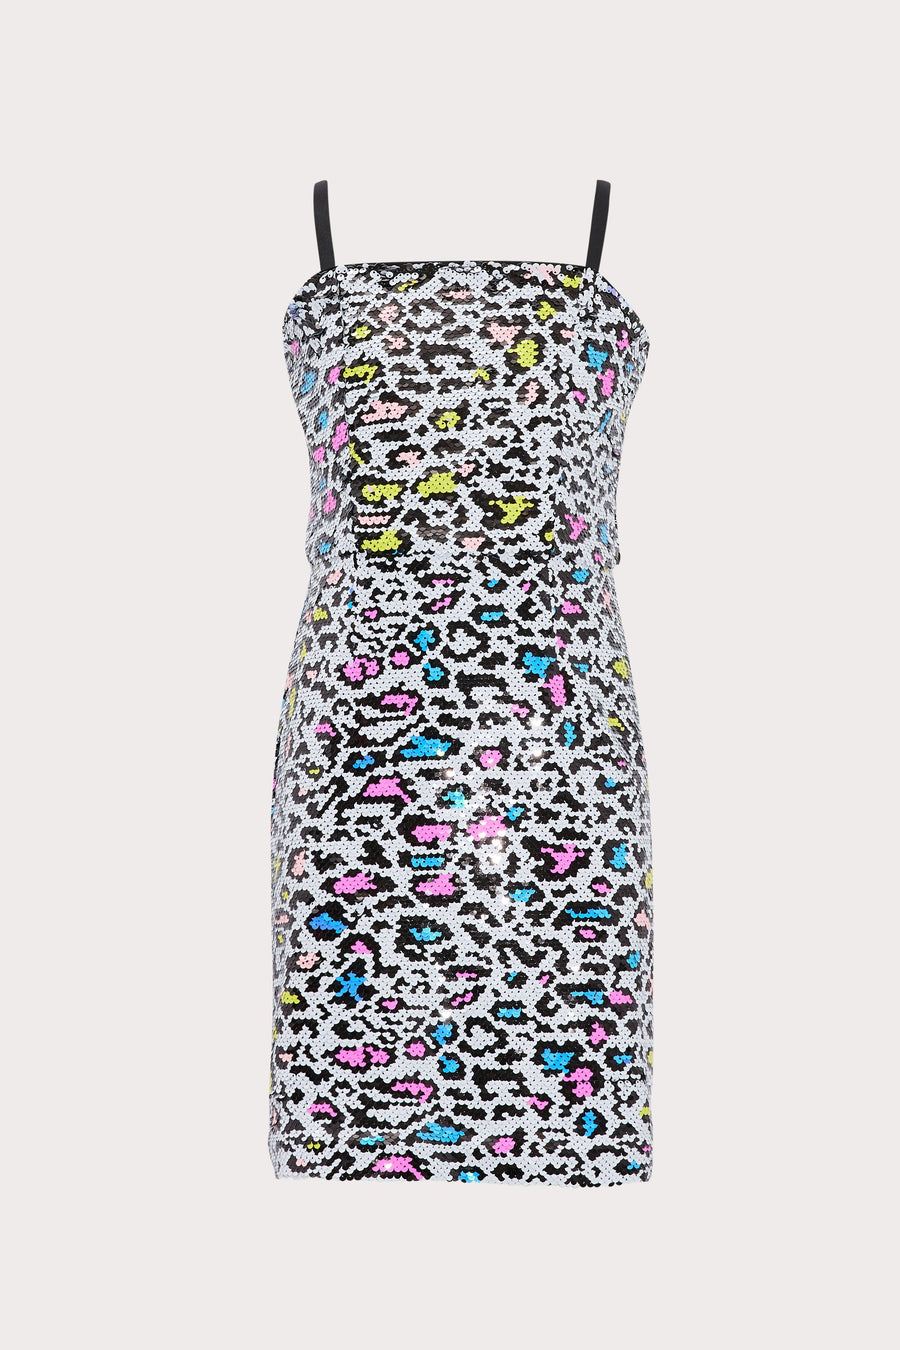 Milly Minis Kyle Leopard Sequins Dress